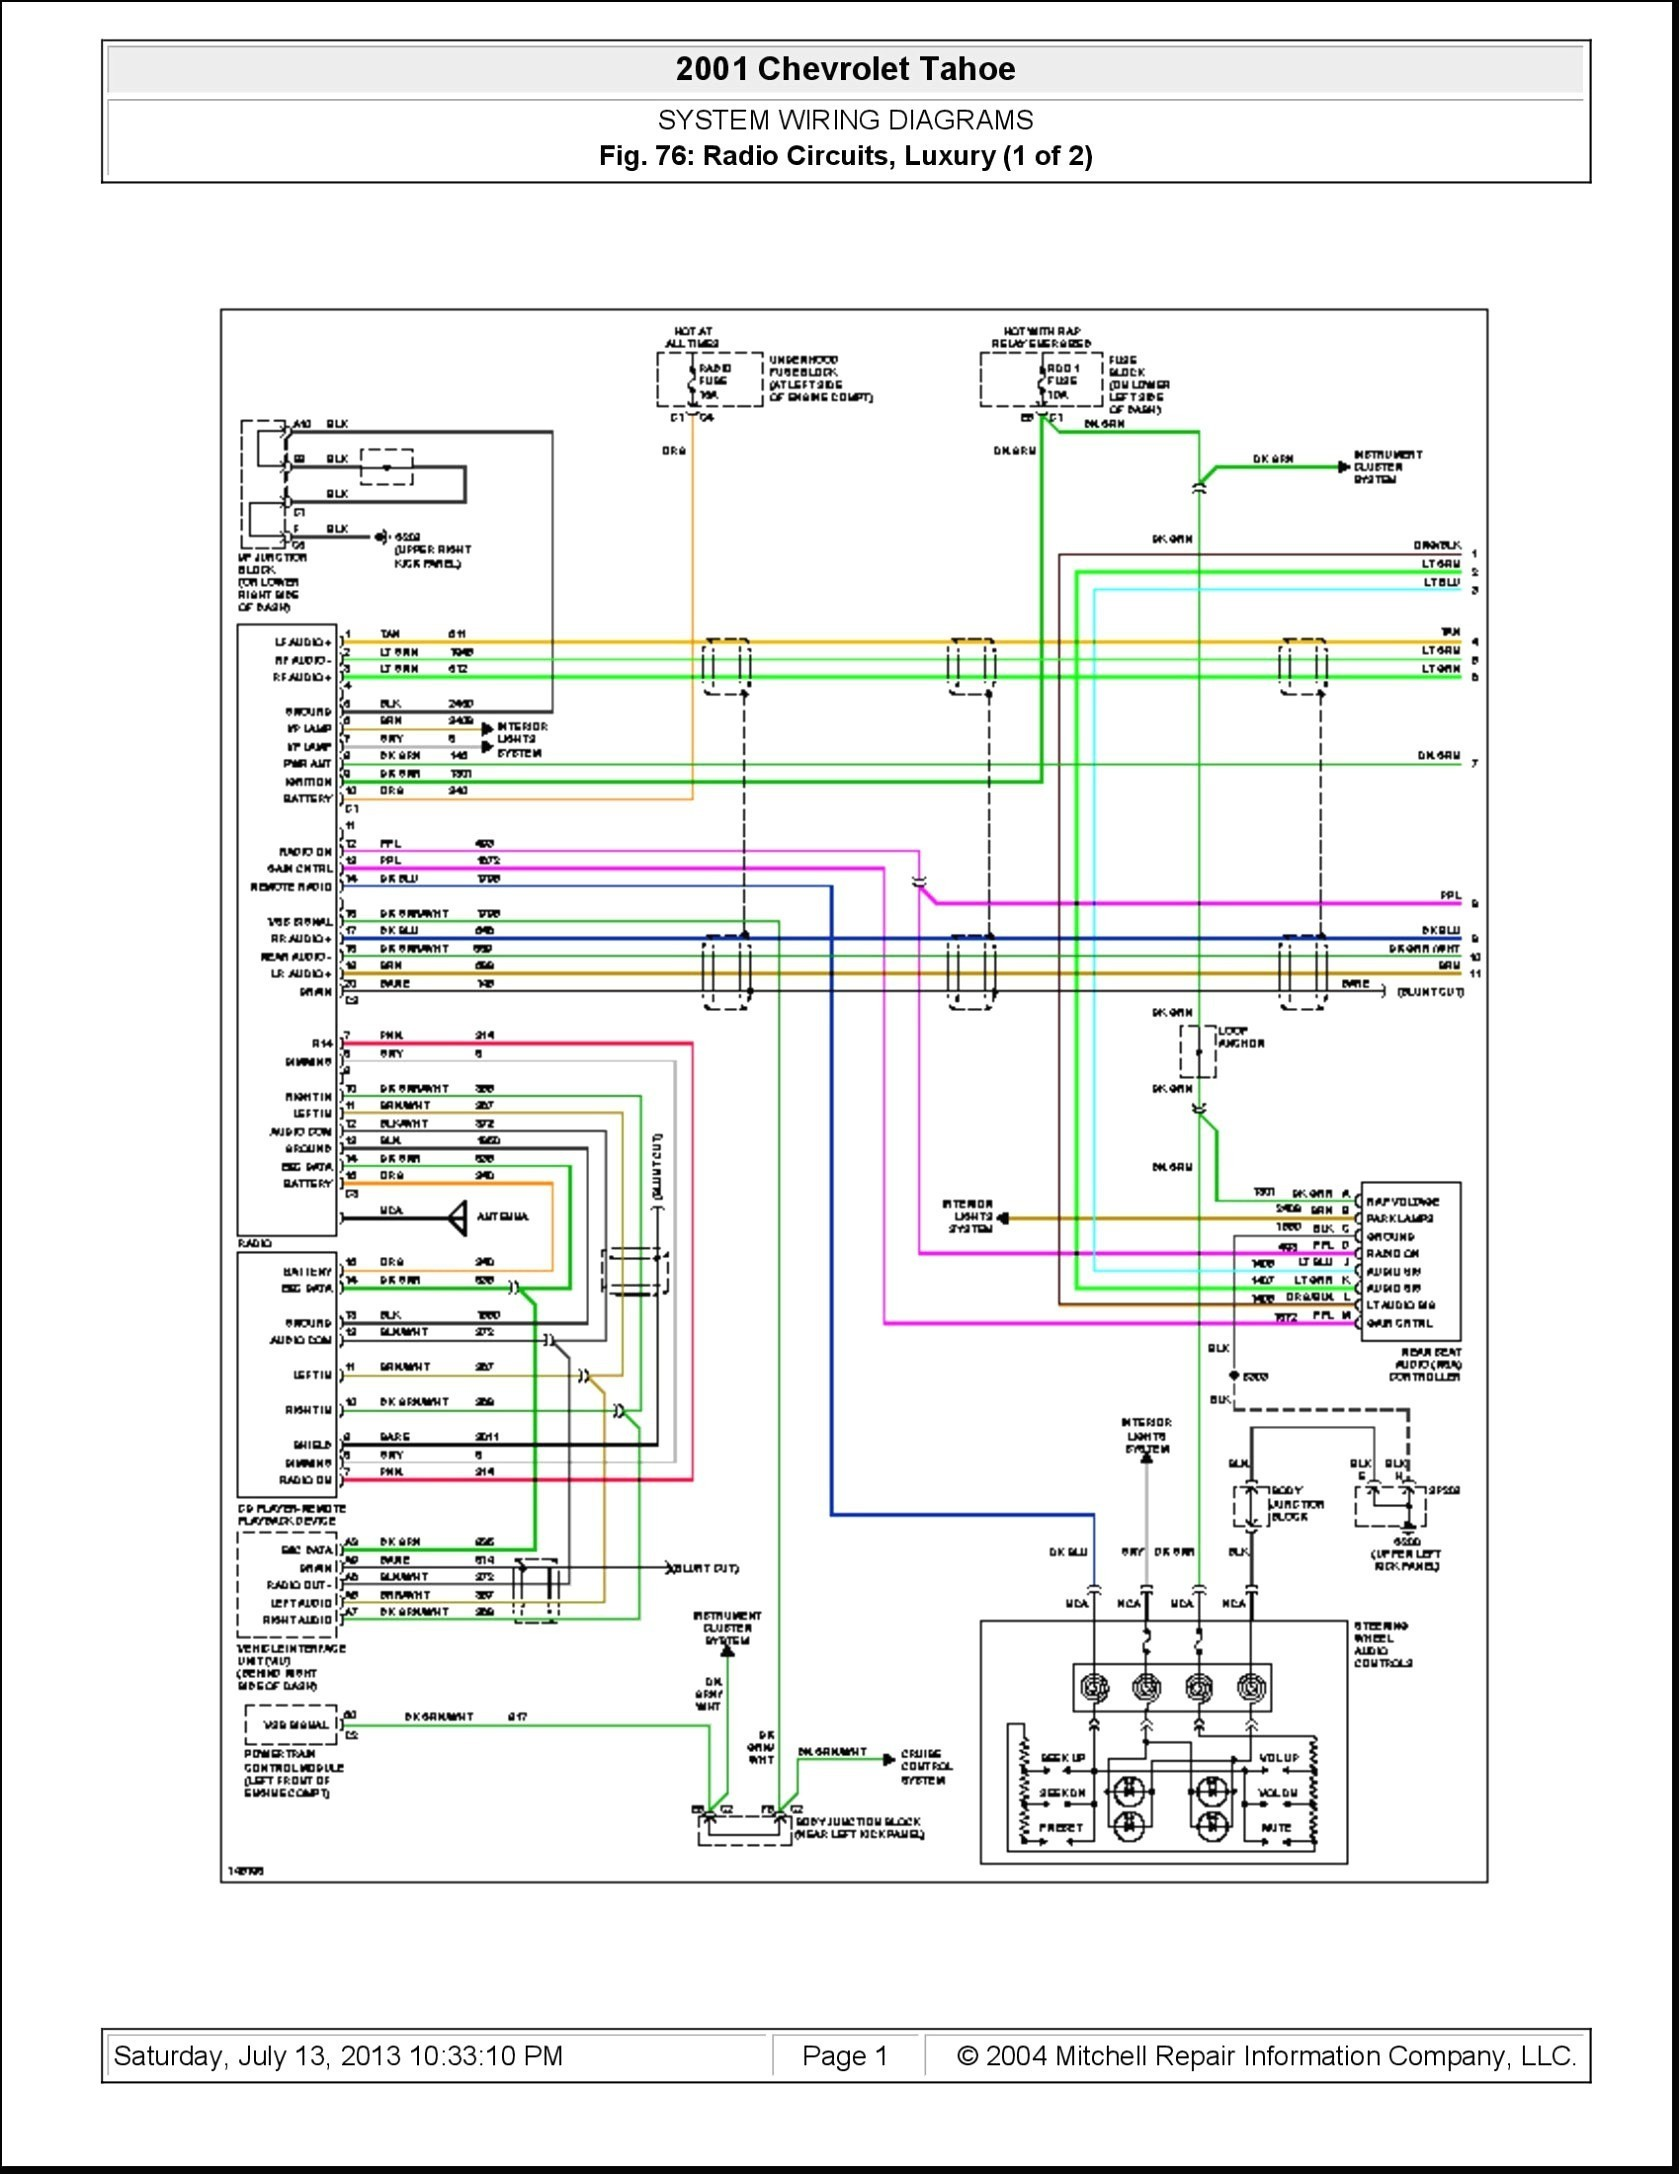 [QNCB_7524]  Quad 250 Wiring Diagram - 97 Chevy Blazer Fuse Box for Wiring Diagram  Schematics | 2004 Ssr Wiring Diagram |  | Wiring Diagram and Schematics